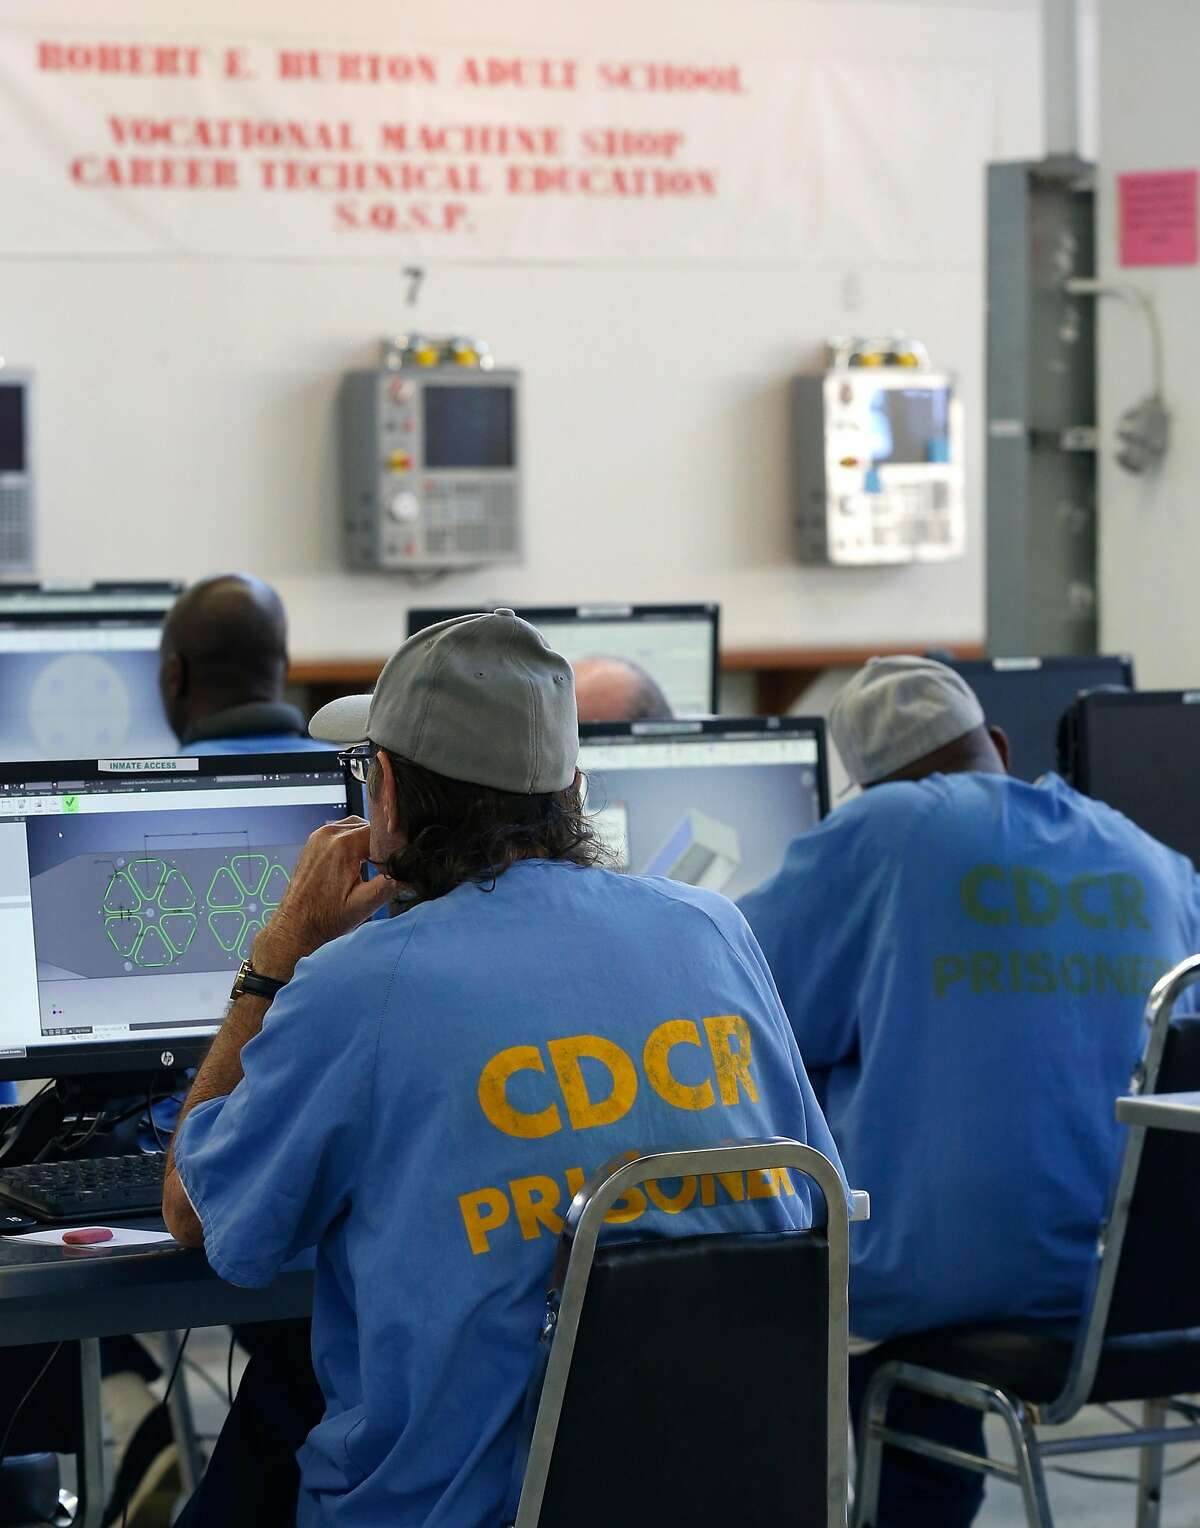 Inmate students use computers in a vocational machine shop class of the Robert E. Burton Adult School at San Quentin State Prison in San Quentin, Calif. on Thursday, Sept. 12, 2019. Burton has been designated as a